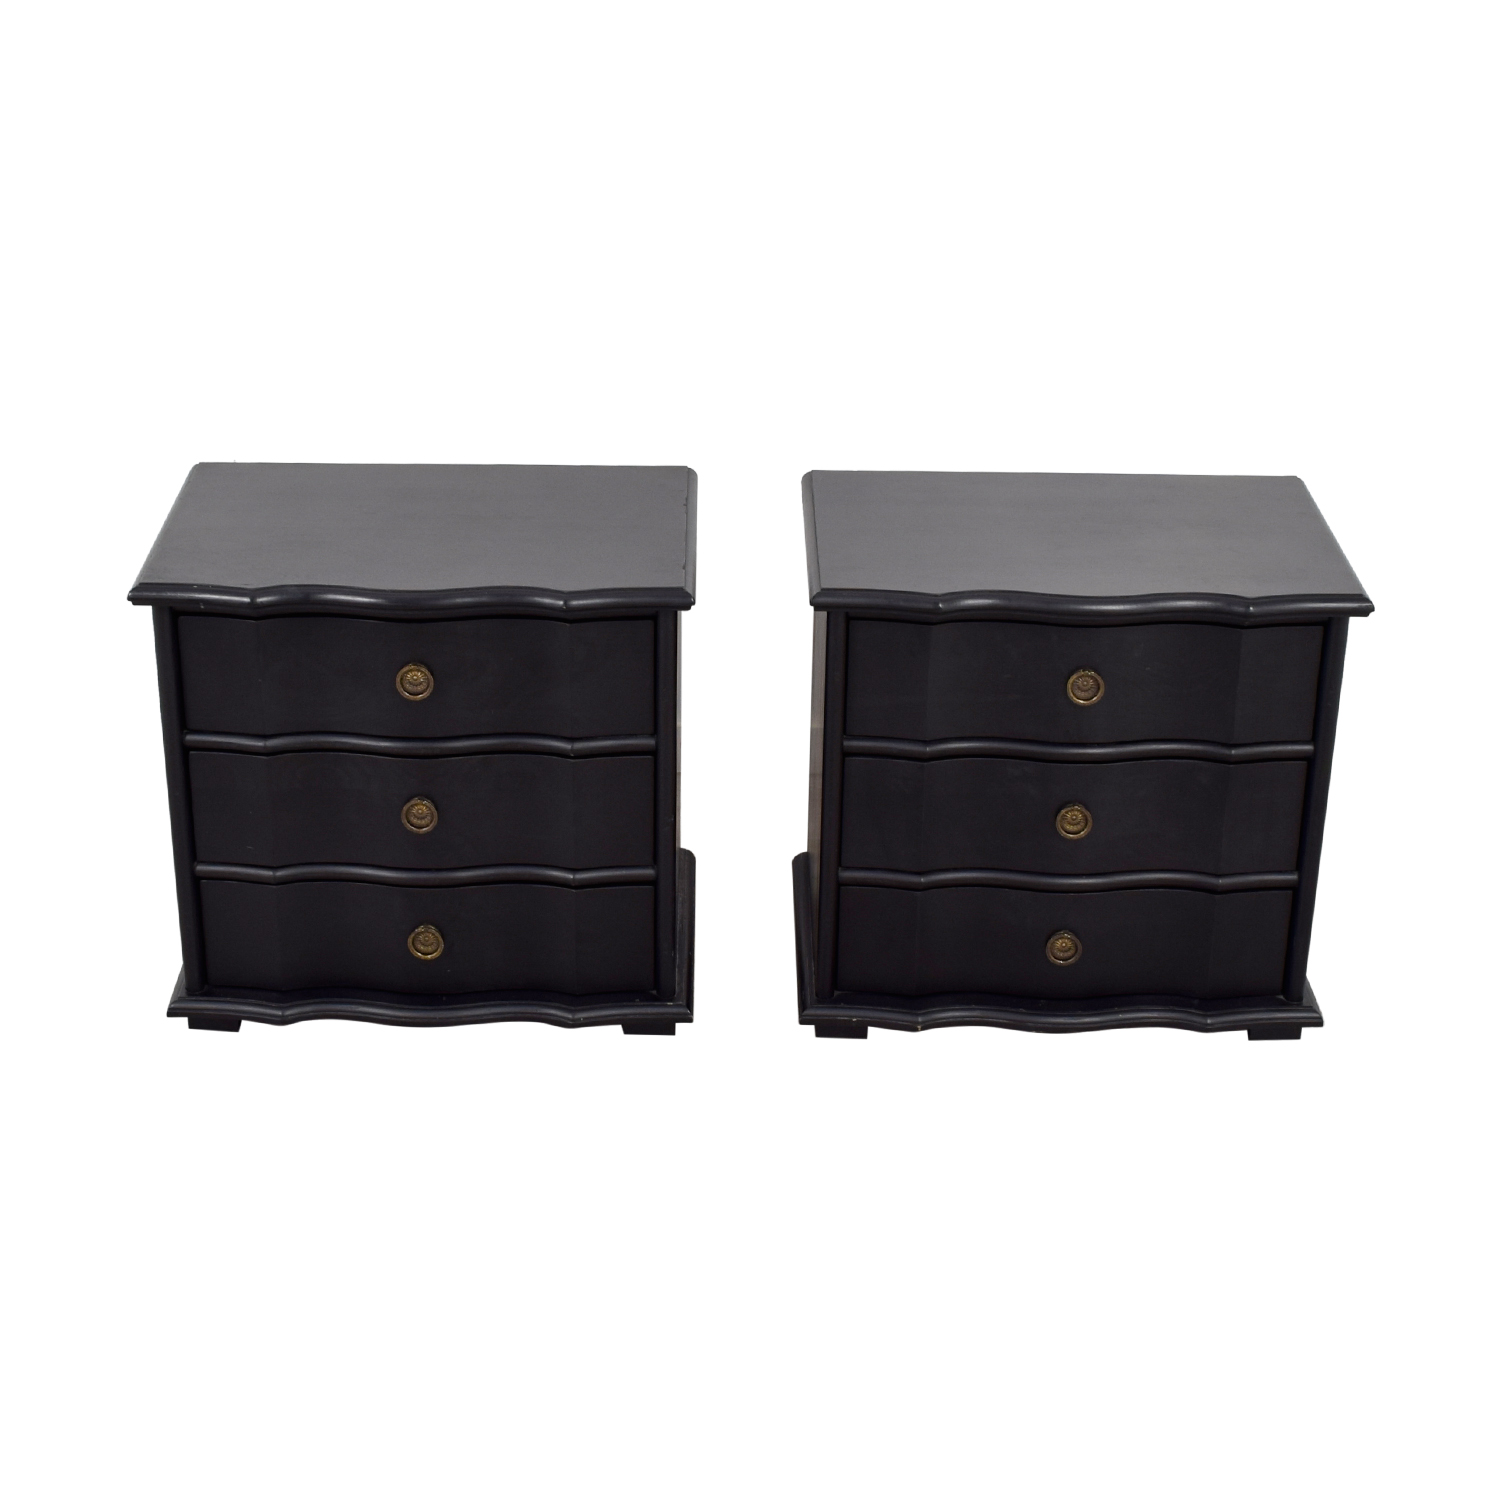 Black End Tables With Drawer 67 Off Restoration Hardware Restoration Hardware Italian Baroque Black Wood Three Drawer Nightstands Tables